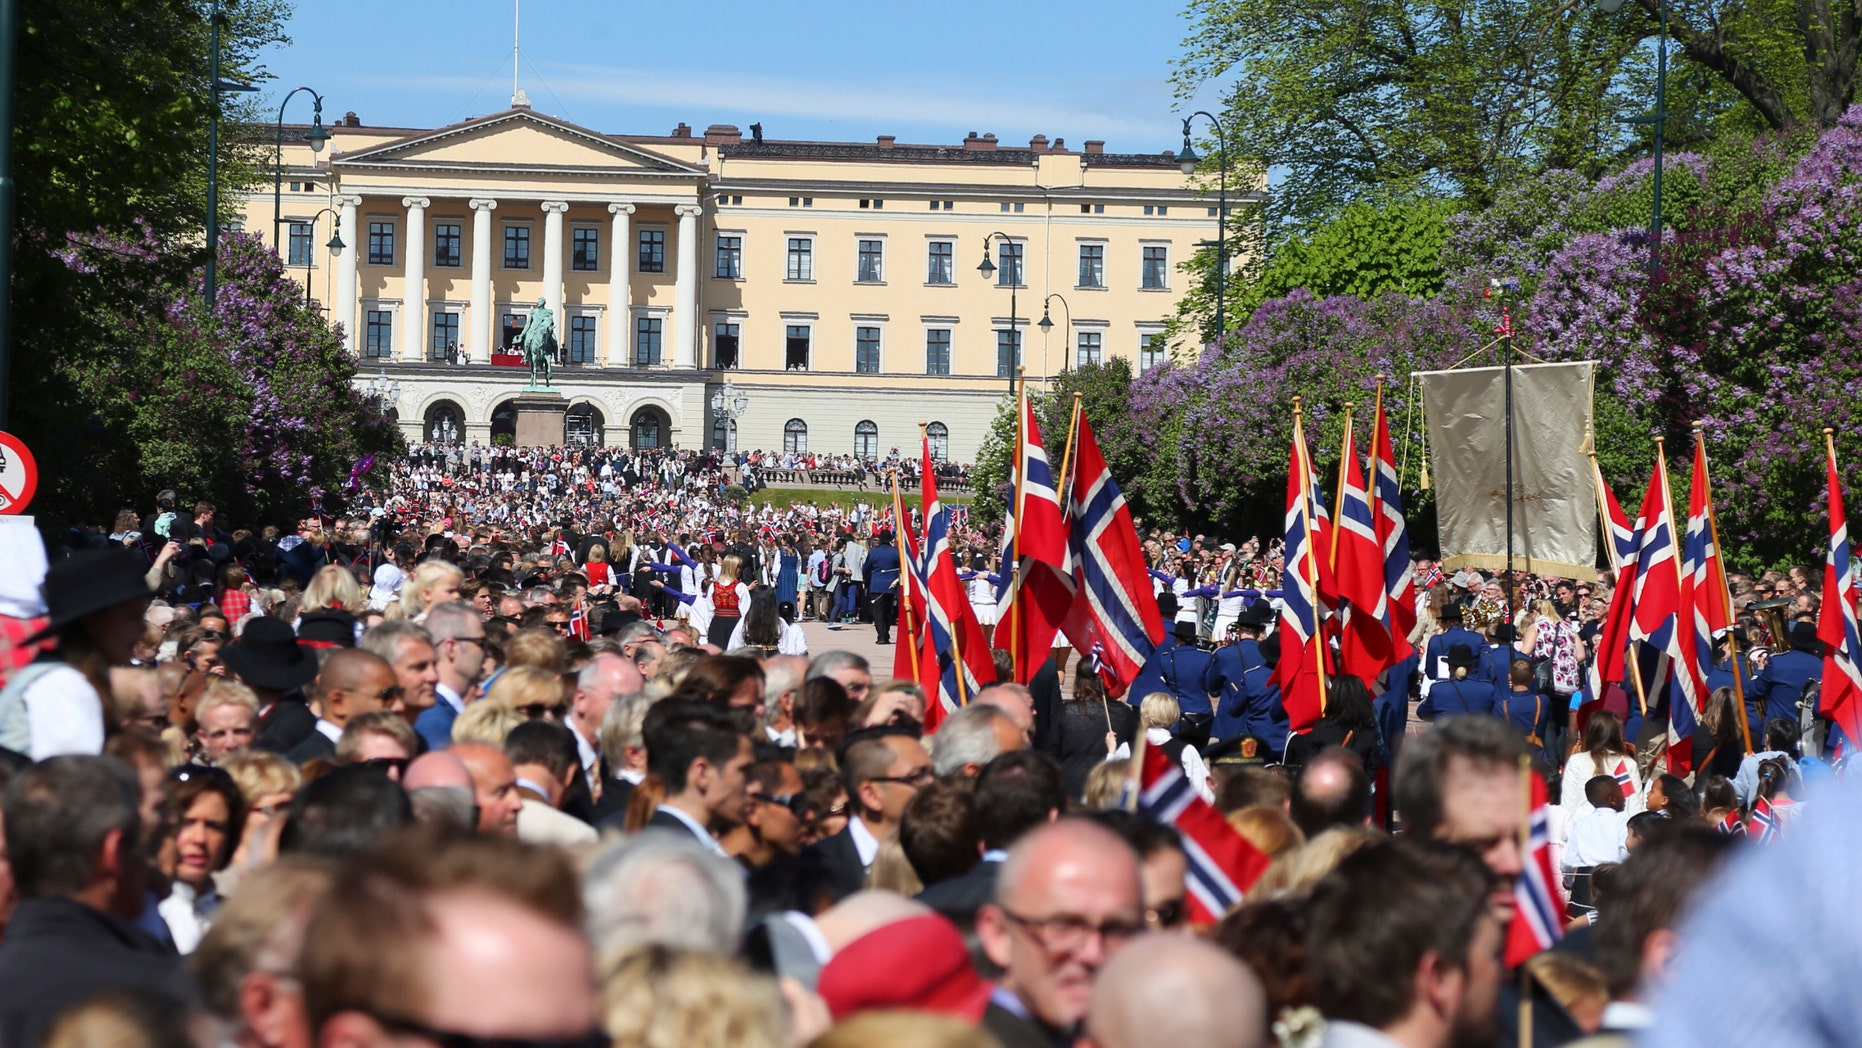 File photo - People gather to take part in the celebration of the Norwegian National Day in the main street of Oslo, in this May 17, 2014 picture provided by NTB Scanpix.